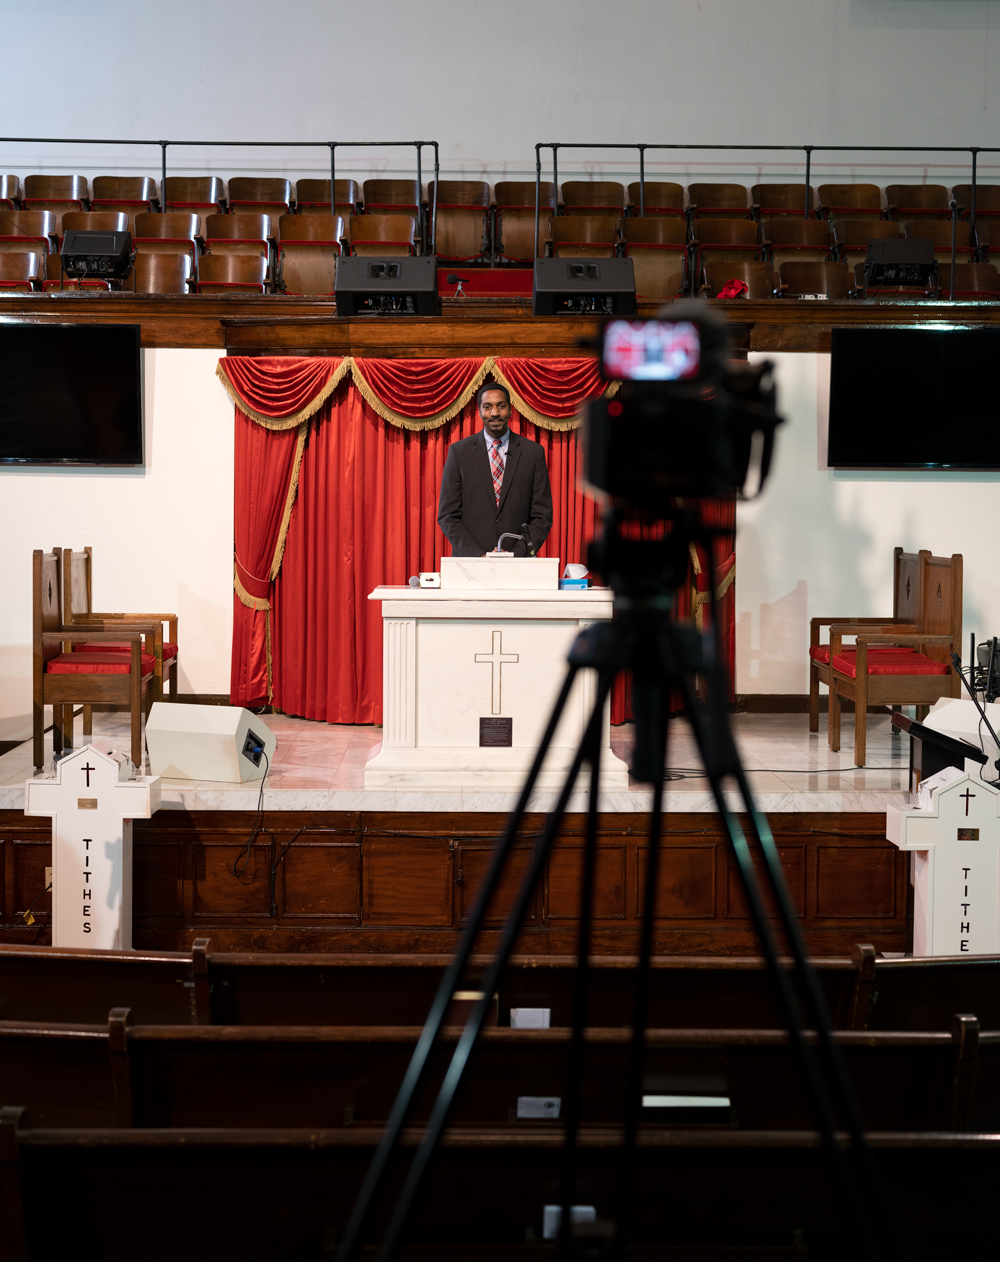 Live streaming Sunday mass via video camera